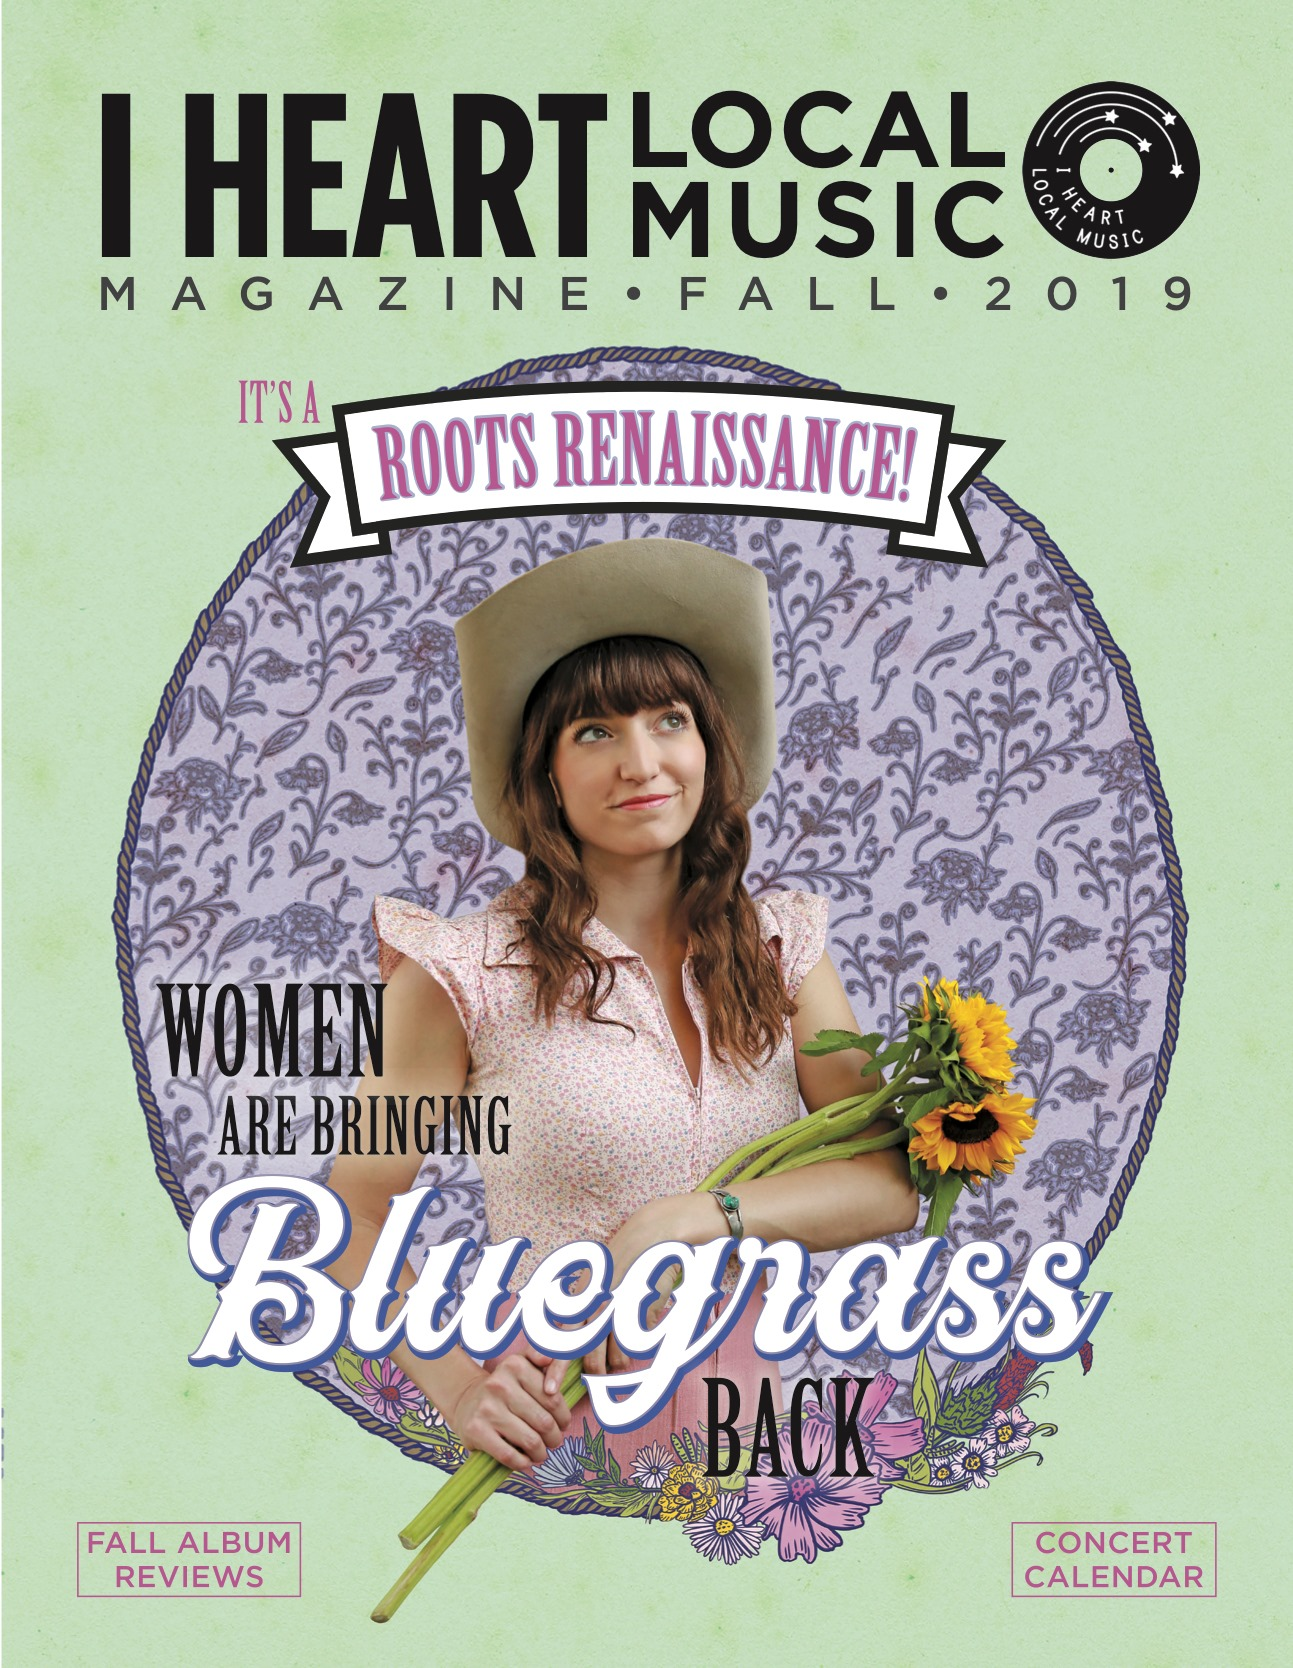 The Fall 2019 I Heart Local Music magazine features Jenna Rae on the cover and Unfit Wives on the inside! Magazine release show September 6 at Replay Lounge.